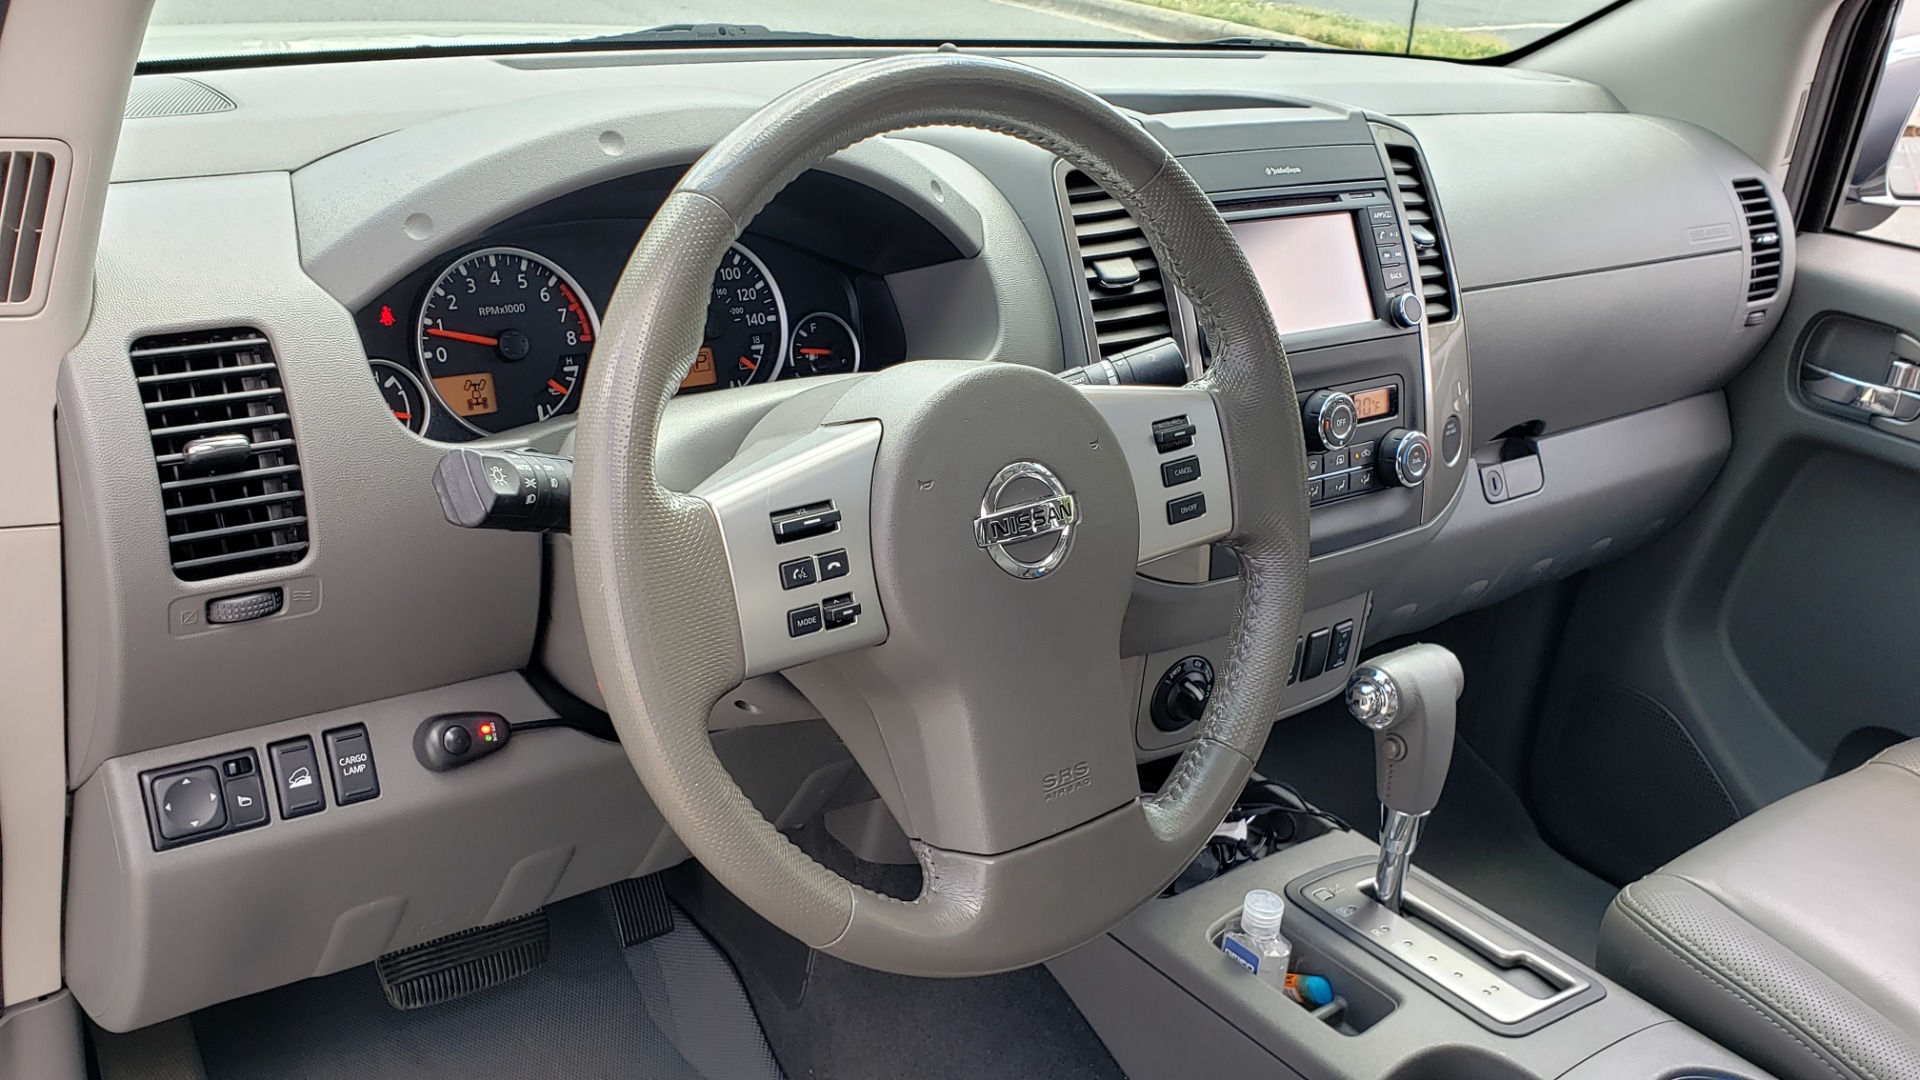 Used 2019 Nissan FRONTIER SL CREW CAB / 4X4 / NAV / SUNROOF / ROCKFORD FOSGATE / LOADED for sale $31,495 at Formula Imports in Charlotte NC 28227 35